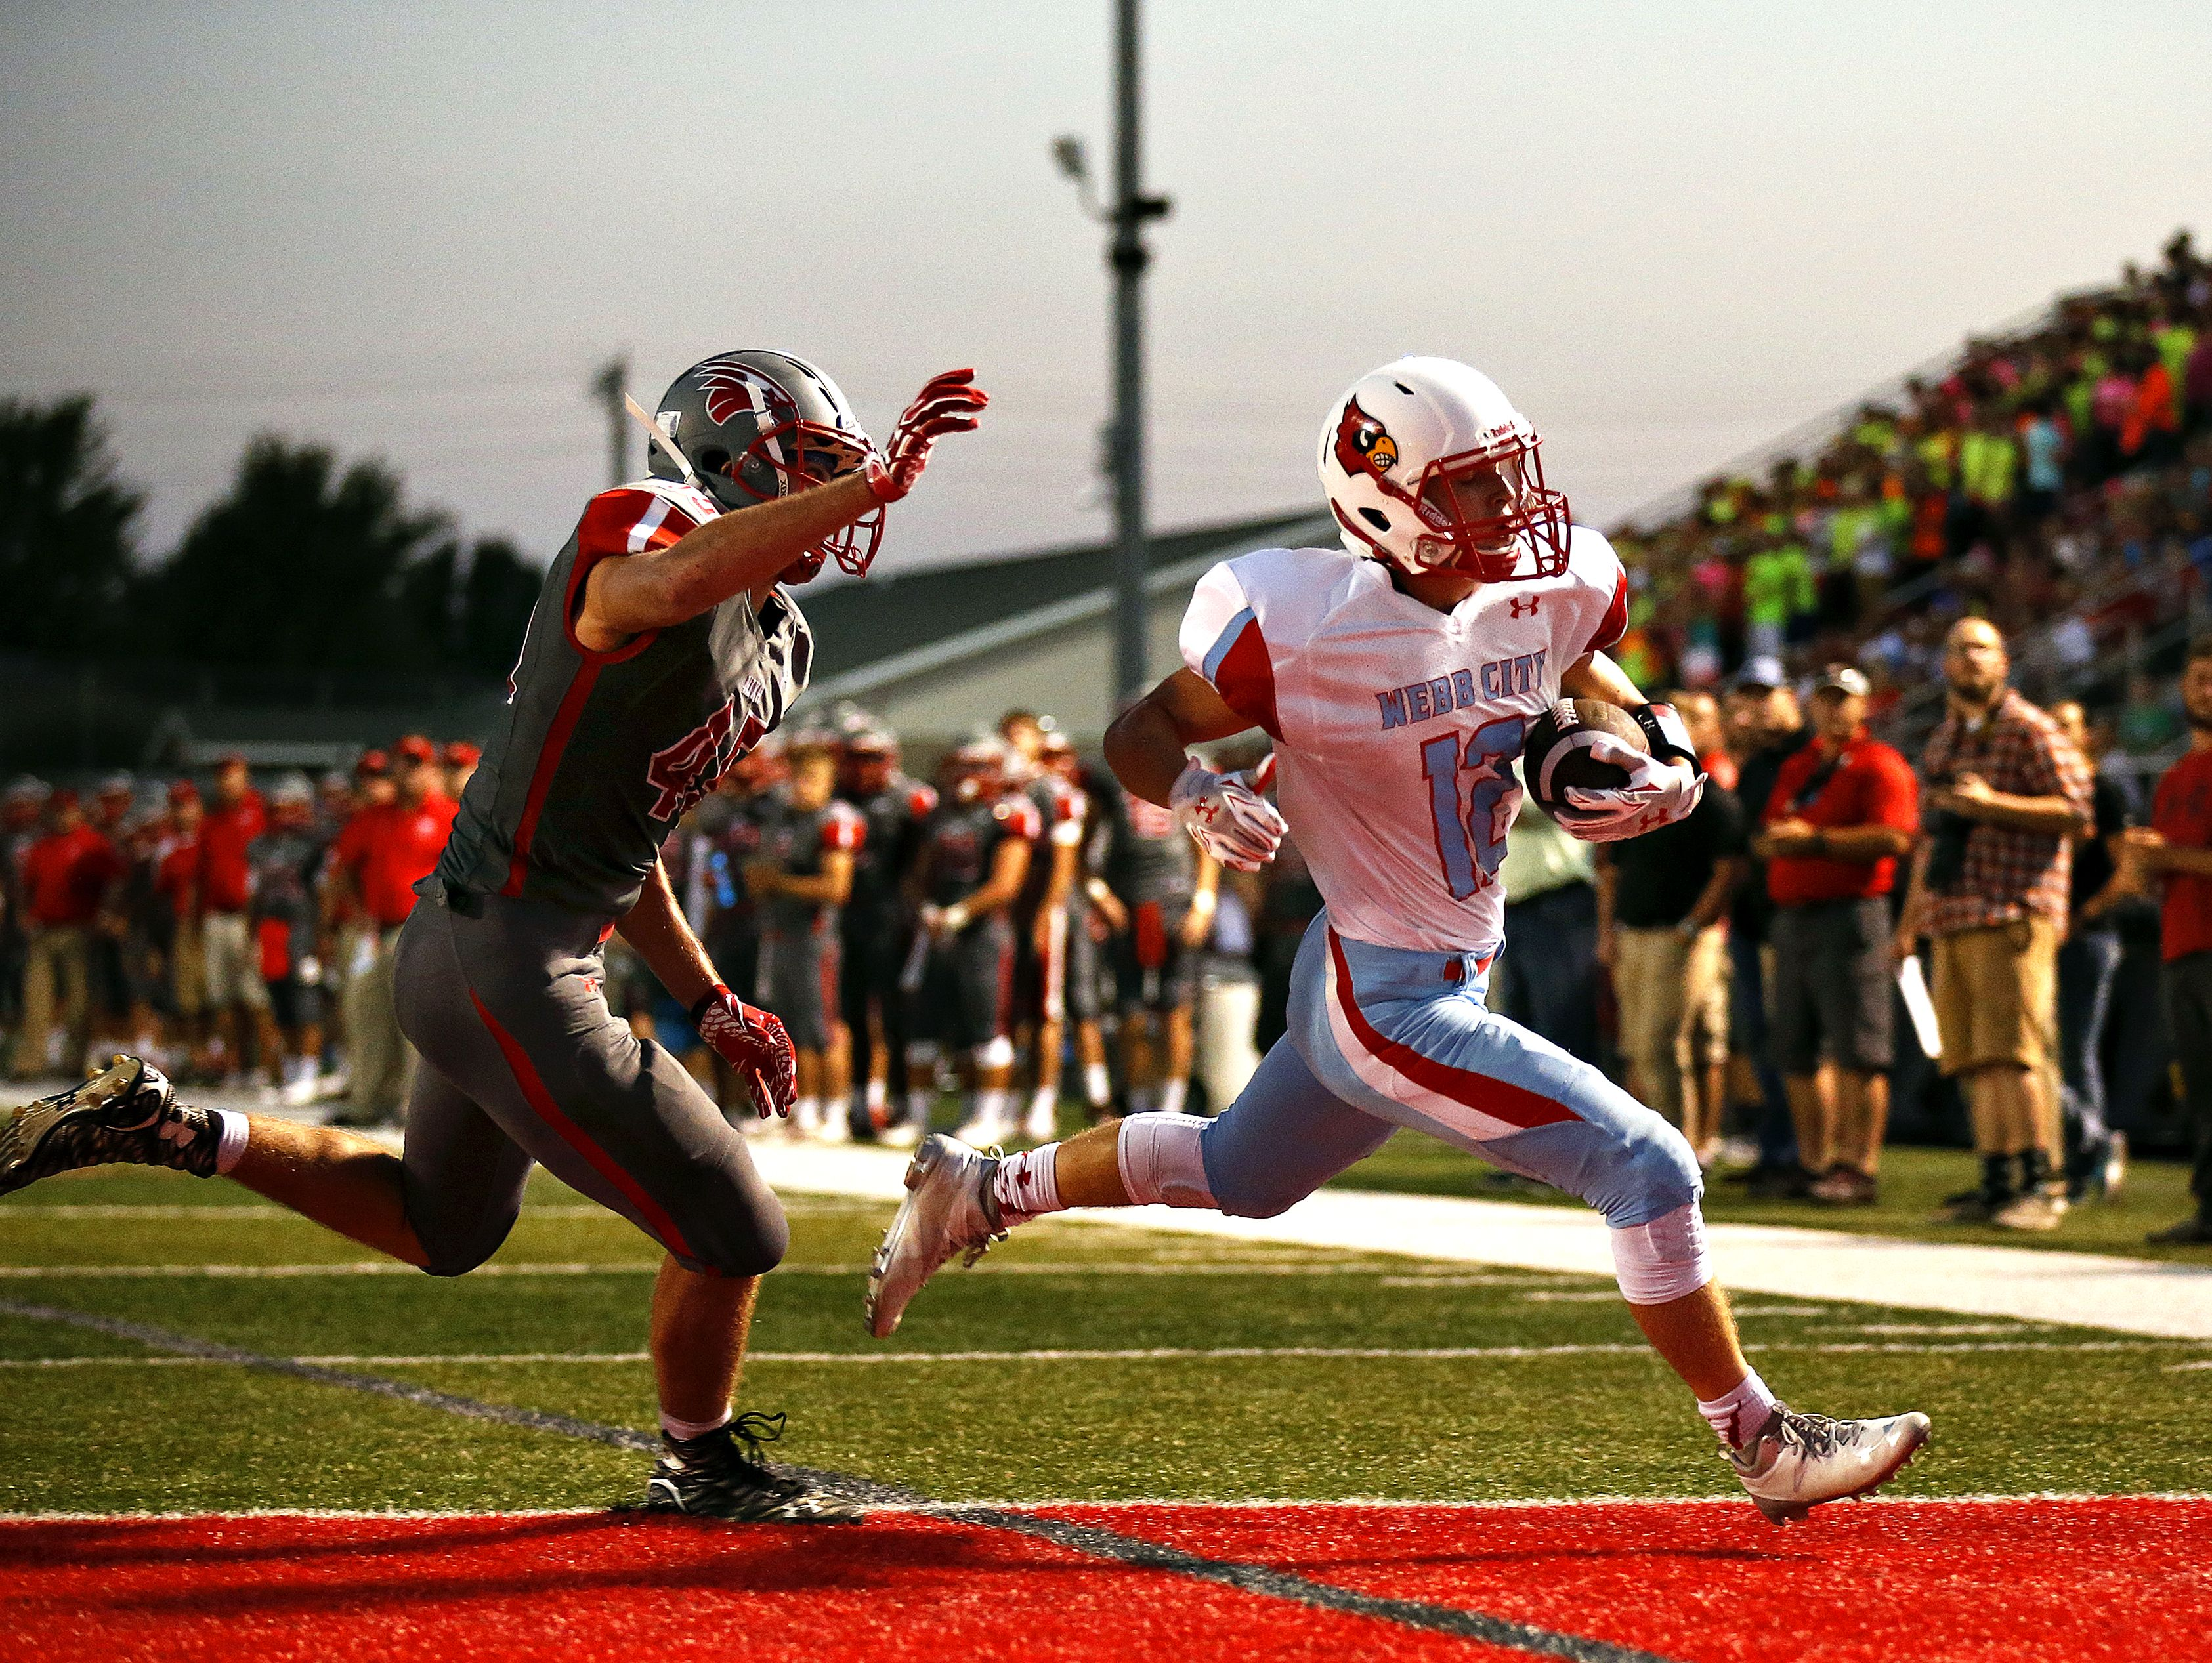 Webb City High School wide receiver Blake Catterson (12) outruns Eagles linebacker Logan Ayers (45) to score a two-point conversion during first quarter action of the football game between Nixa High School and Webb City High School at Eagles Stadium in Nixa, Mo. on Sept. 23, 2016. Webb City won the game 34-10.